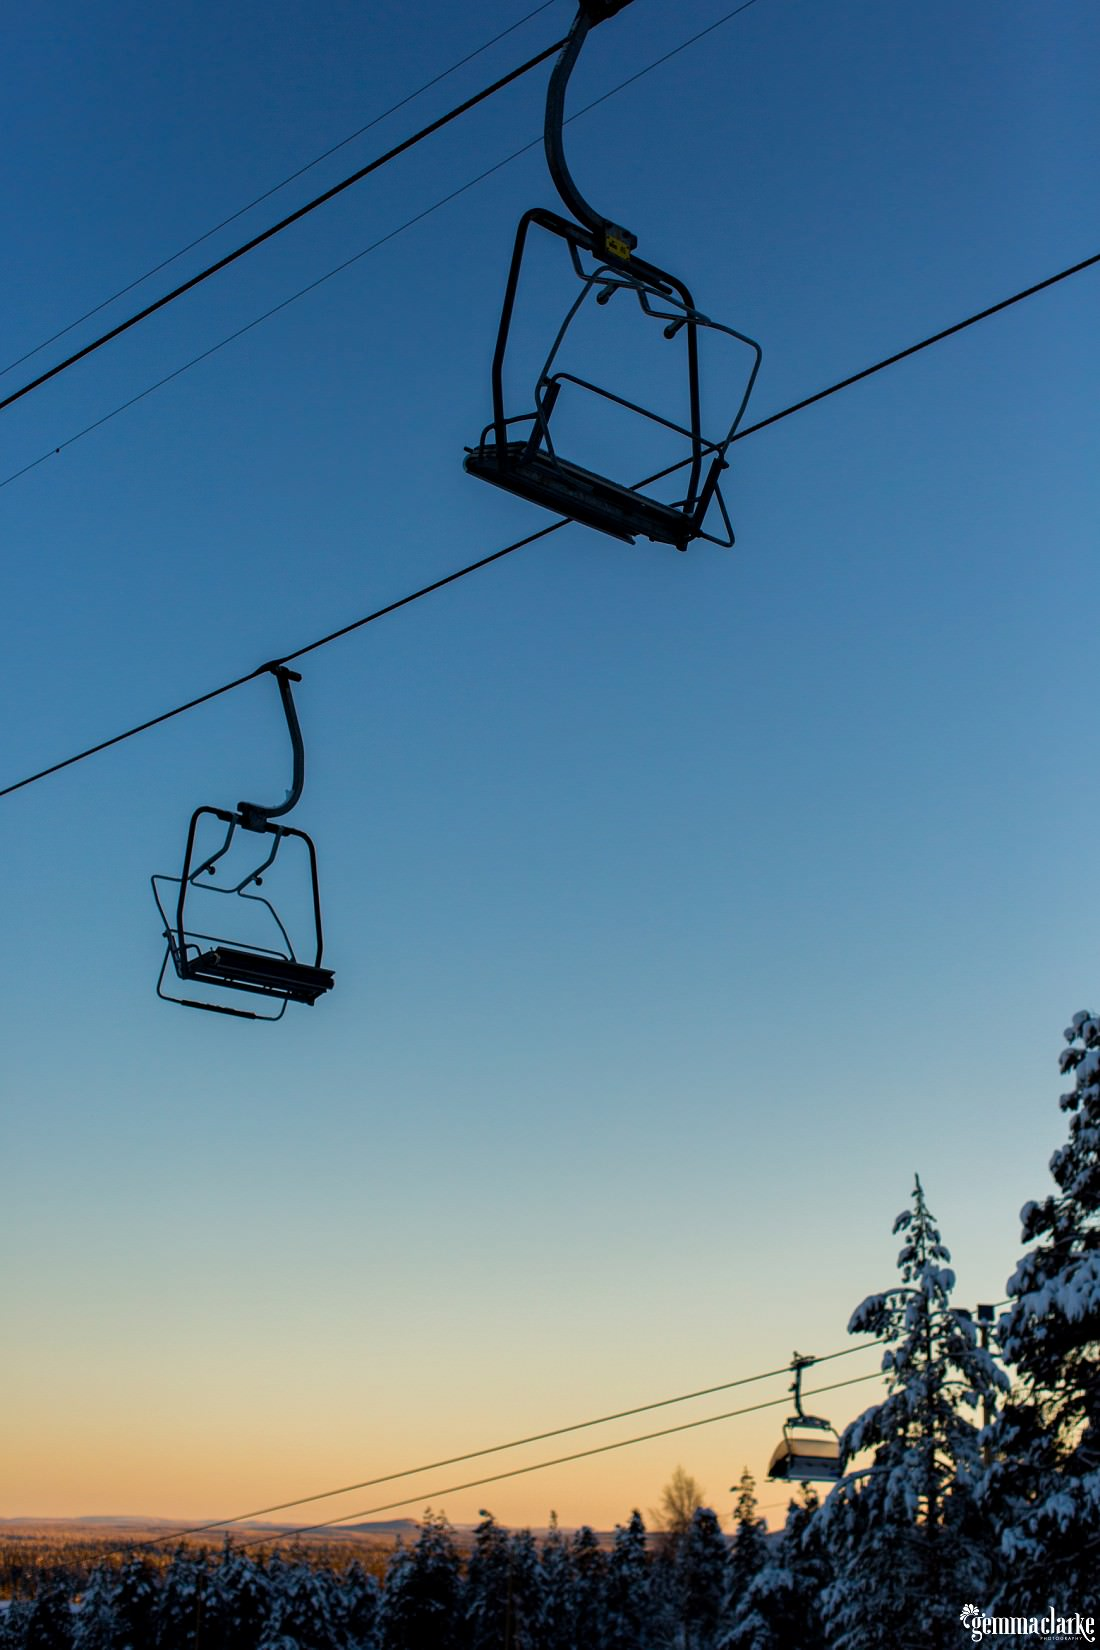 A ski lift and snowy trees